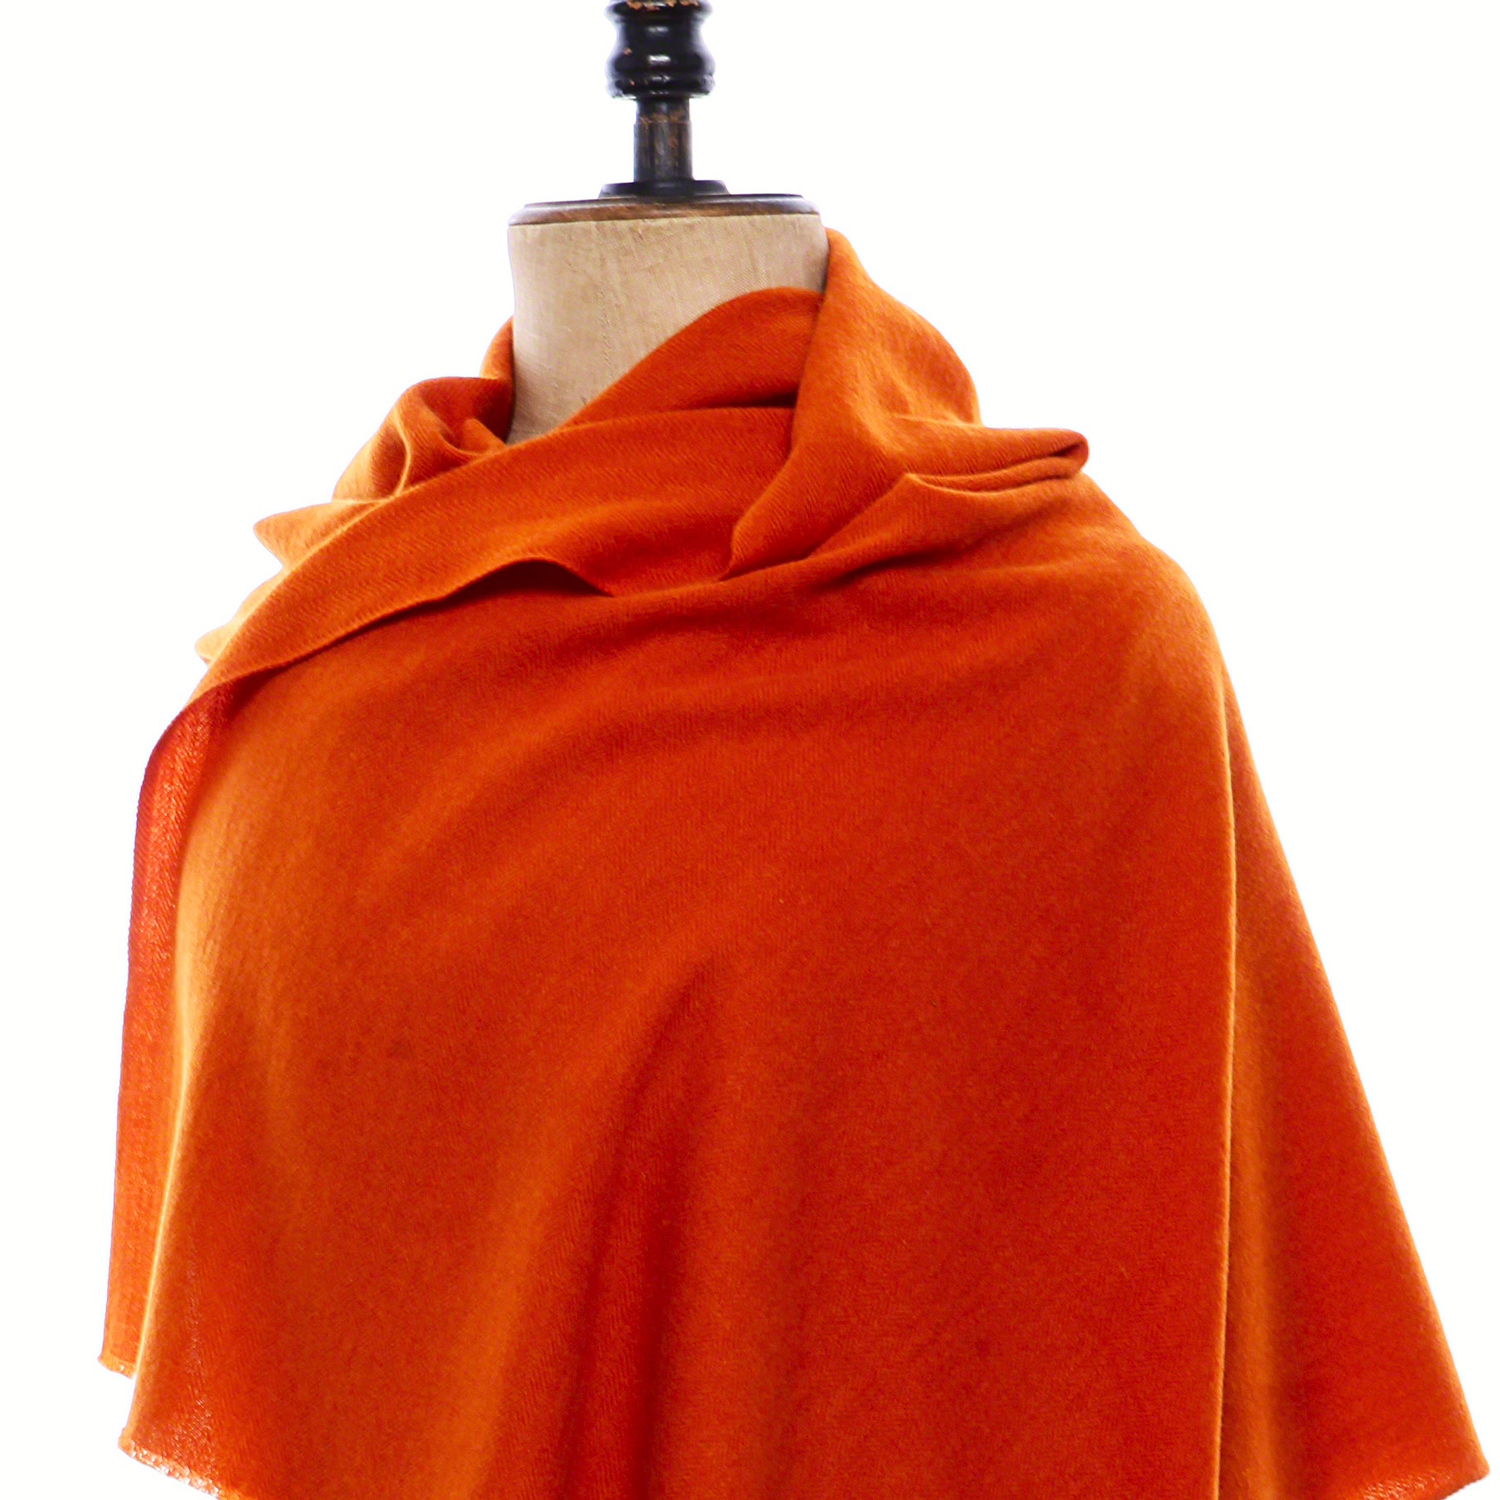 Click to customize your own ethical and renewable Himalayan real Pashmina Shawl to accent your wardrobe perfectly. Cashmere Shawl shown here in Burnt Orange color with Herringbone weave. https://pashm.com/shop/himalayan-cashmere-shawl/